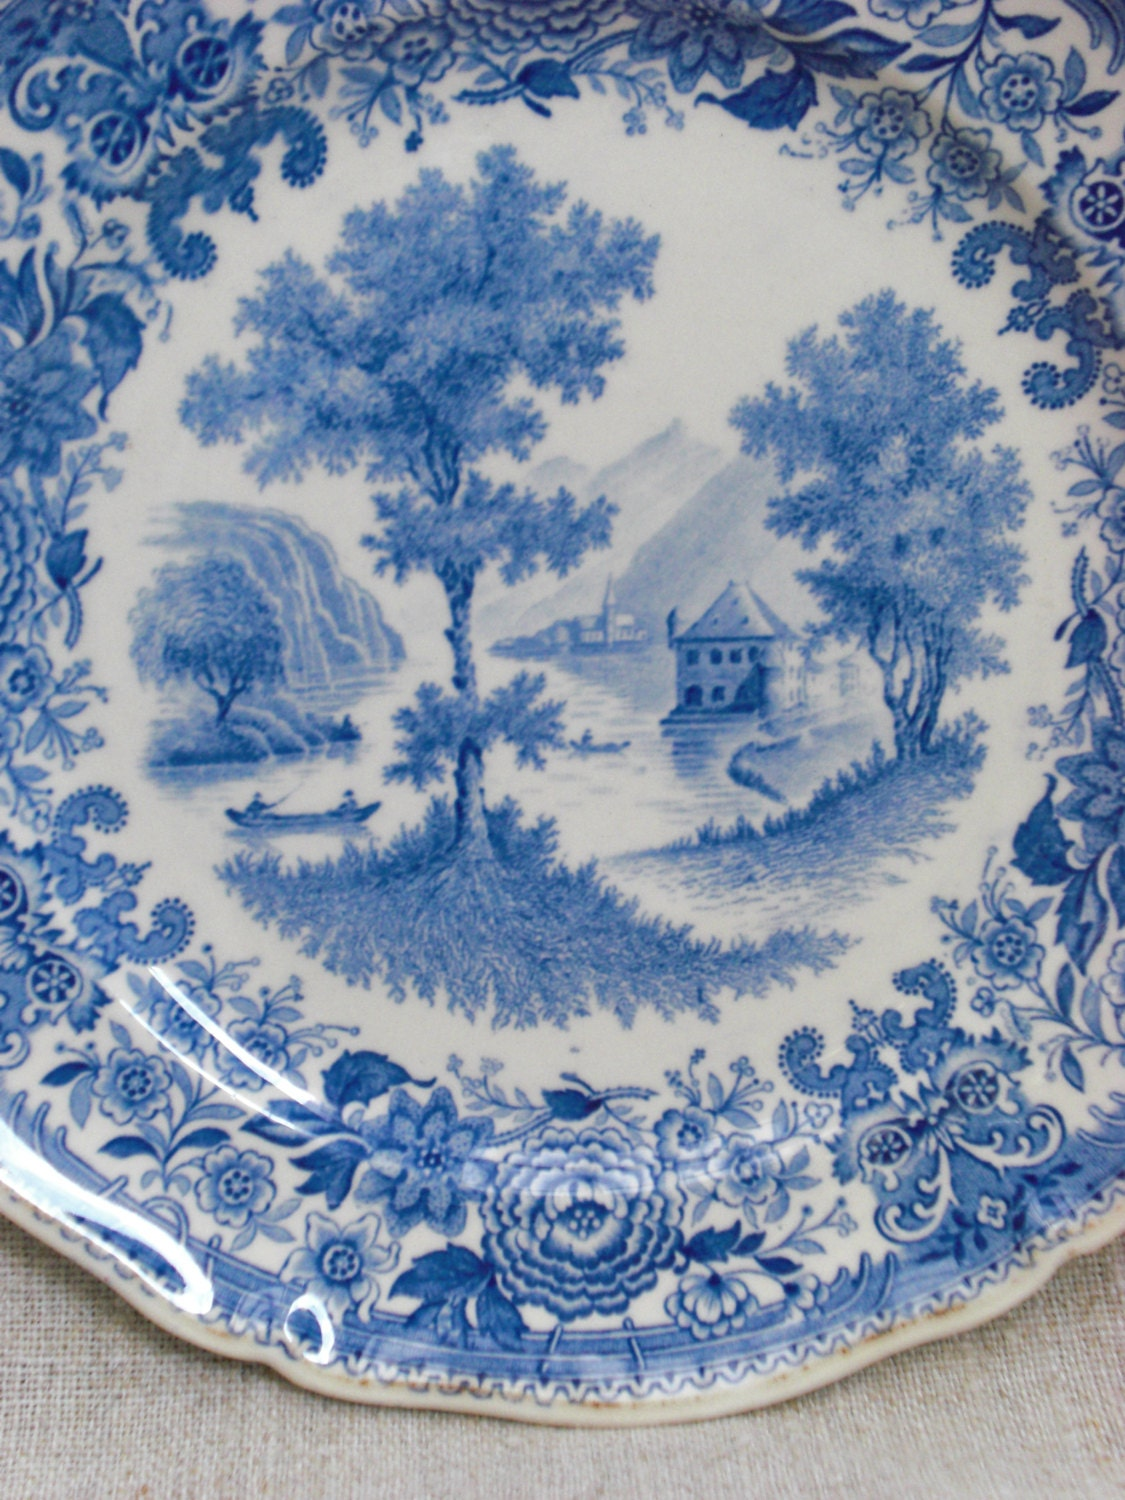 Boch New To You >> Antique Villeroy & Boch Burgenland plate blue white